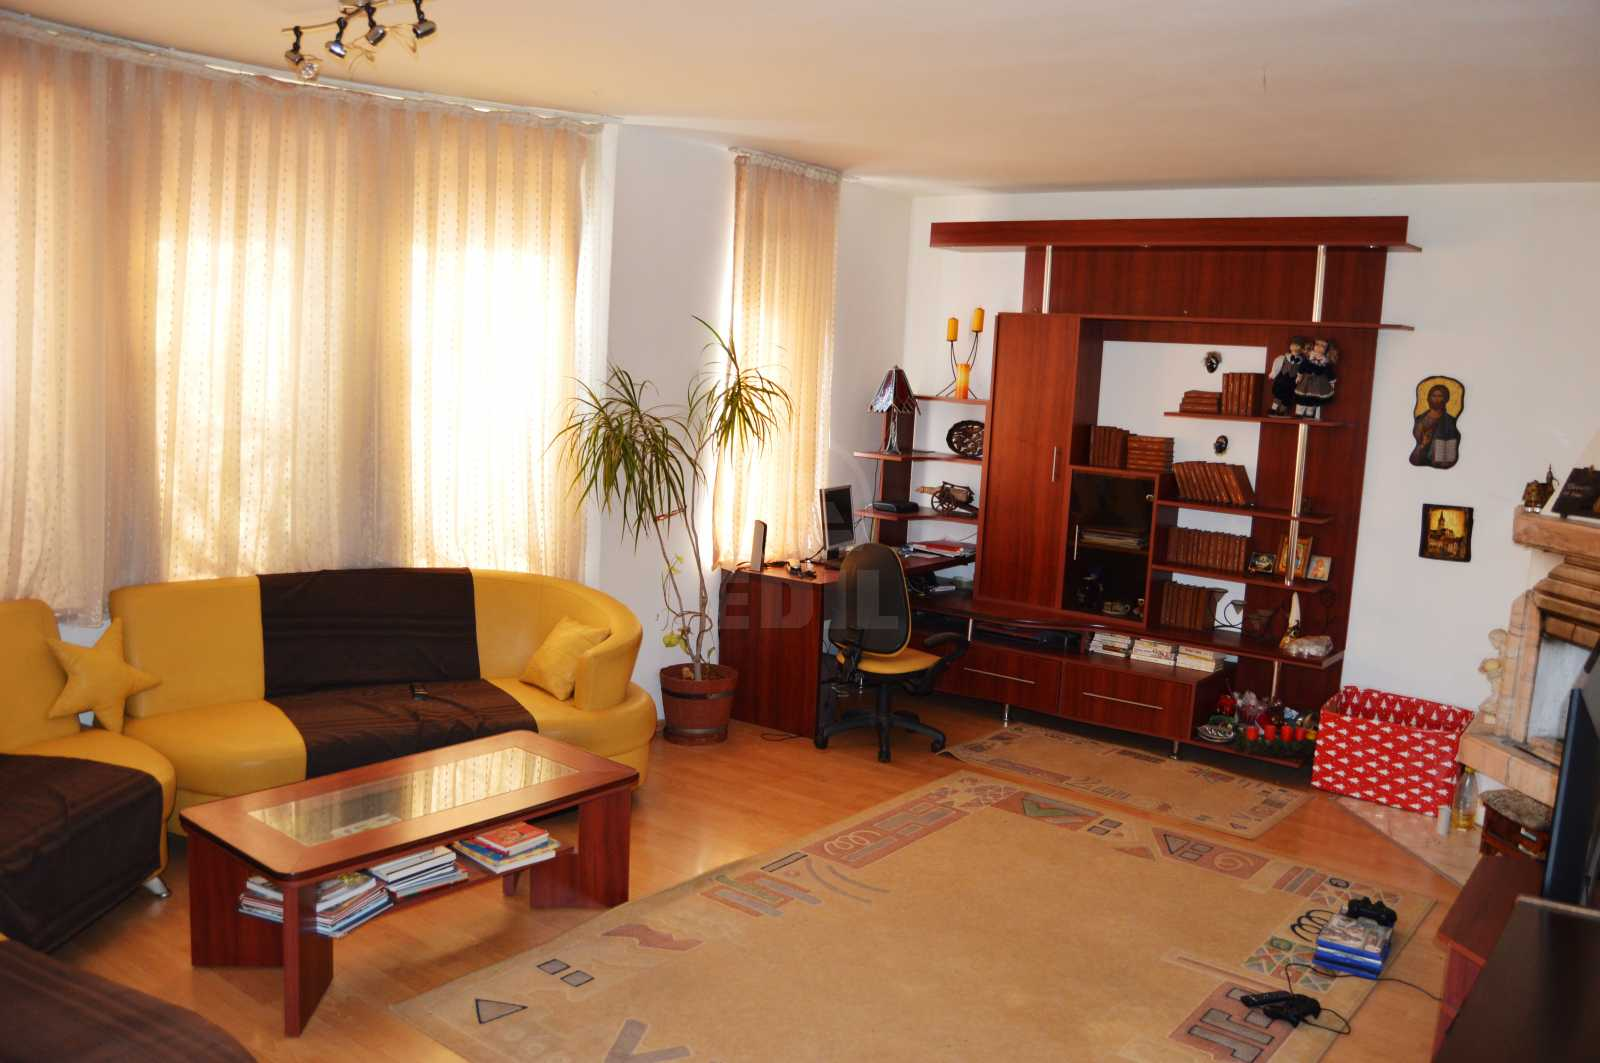 House for sale 5 rooms, CACJ285647-3